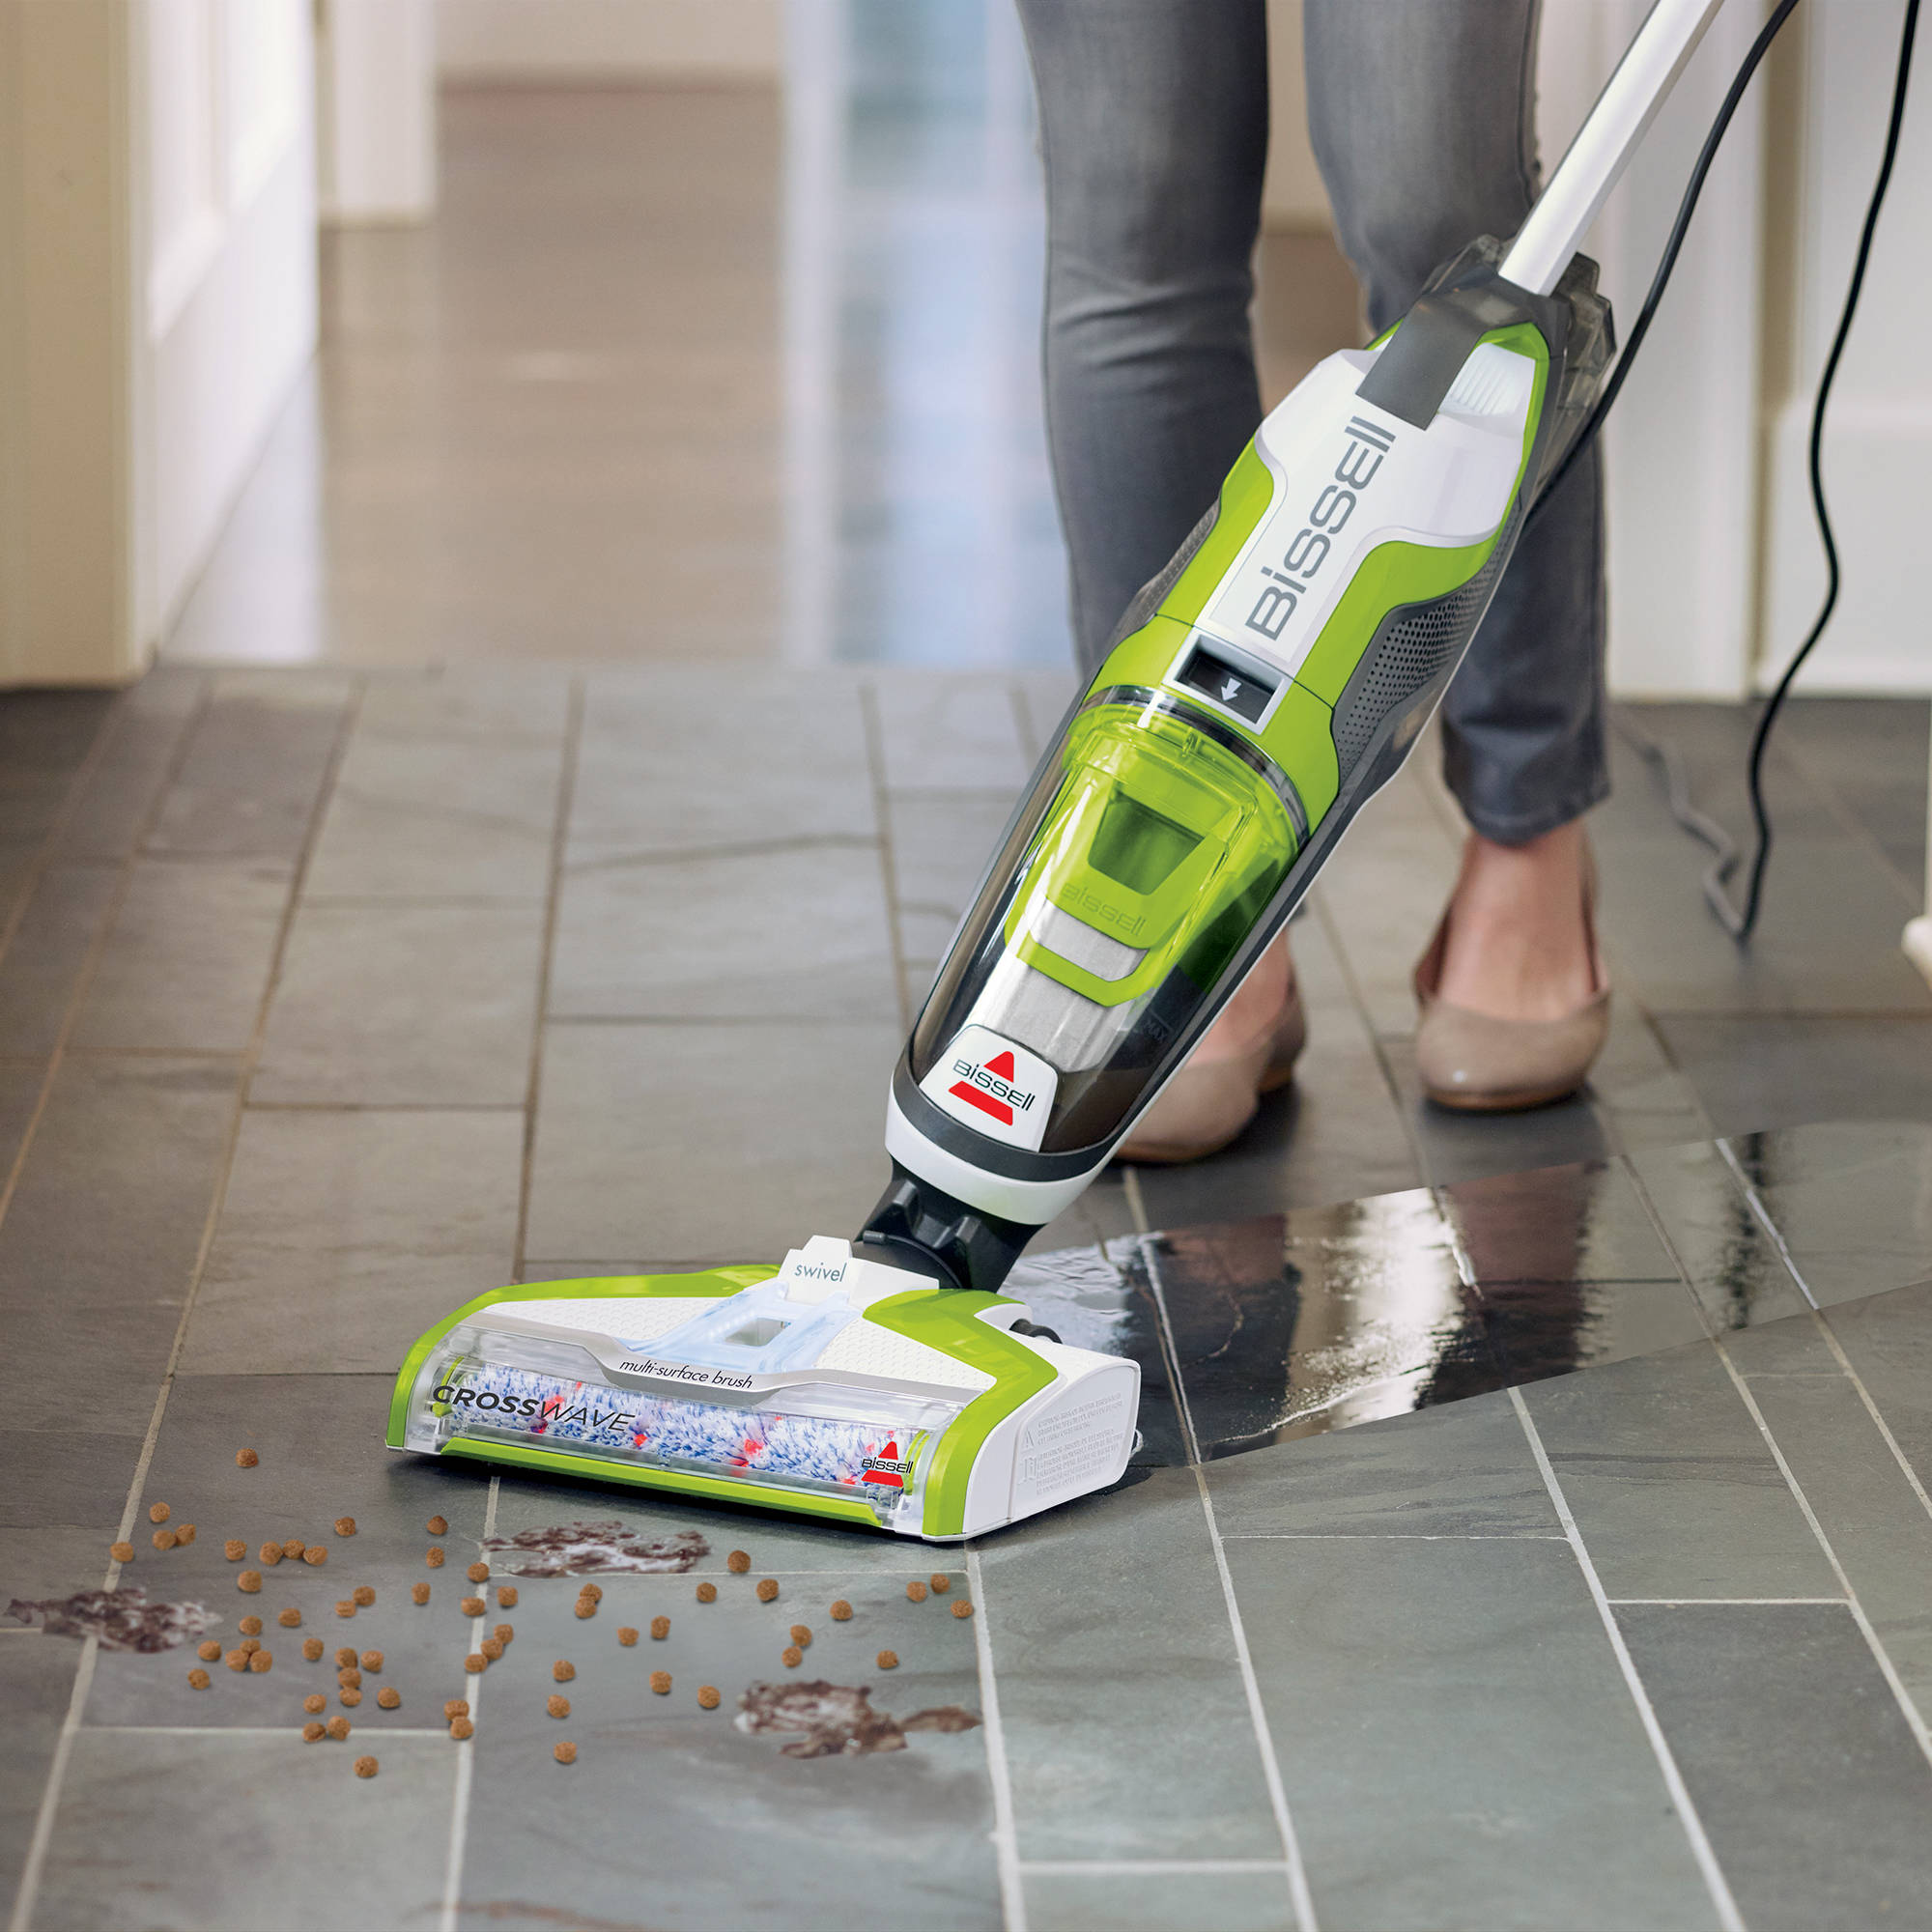 Fingerhut bissell crosswave 2 in 1 vac and wash hard floor cleaner 6easy remove brush window dailygadgetfo Image collections